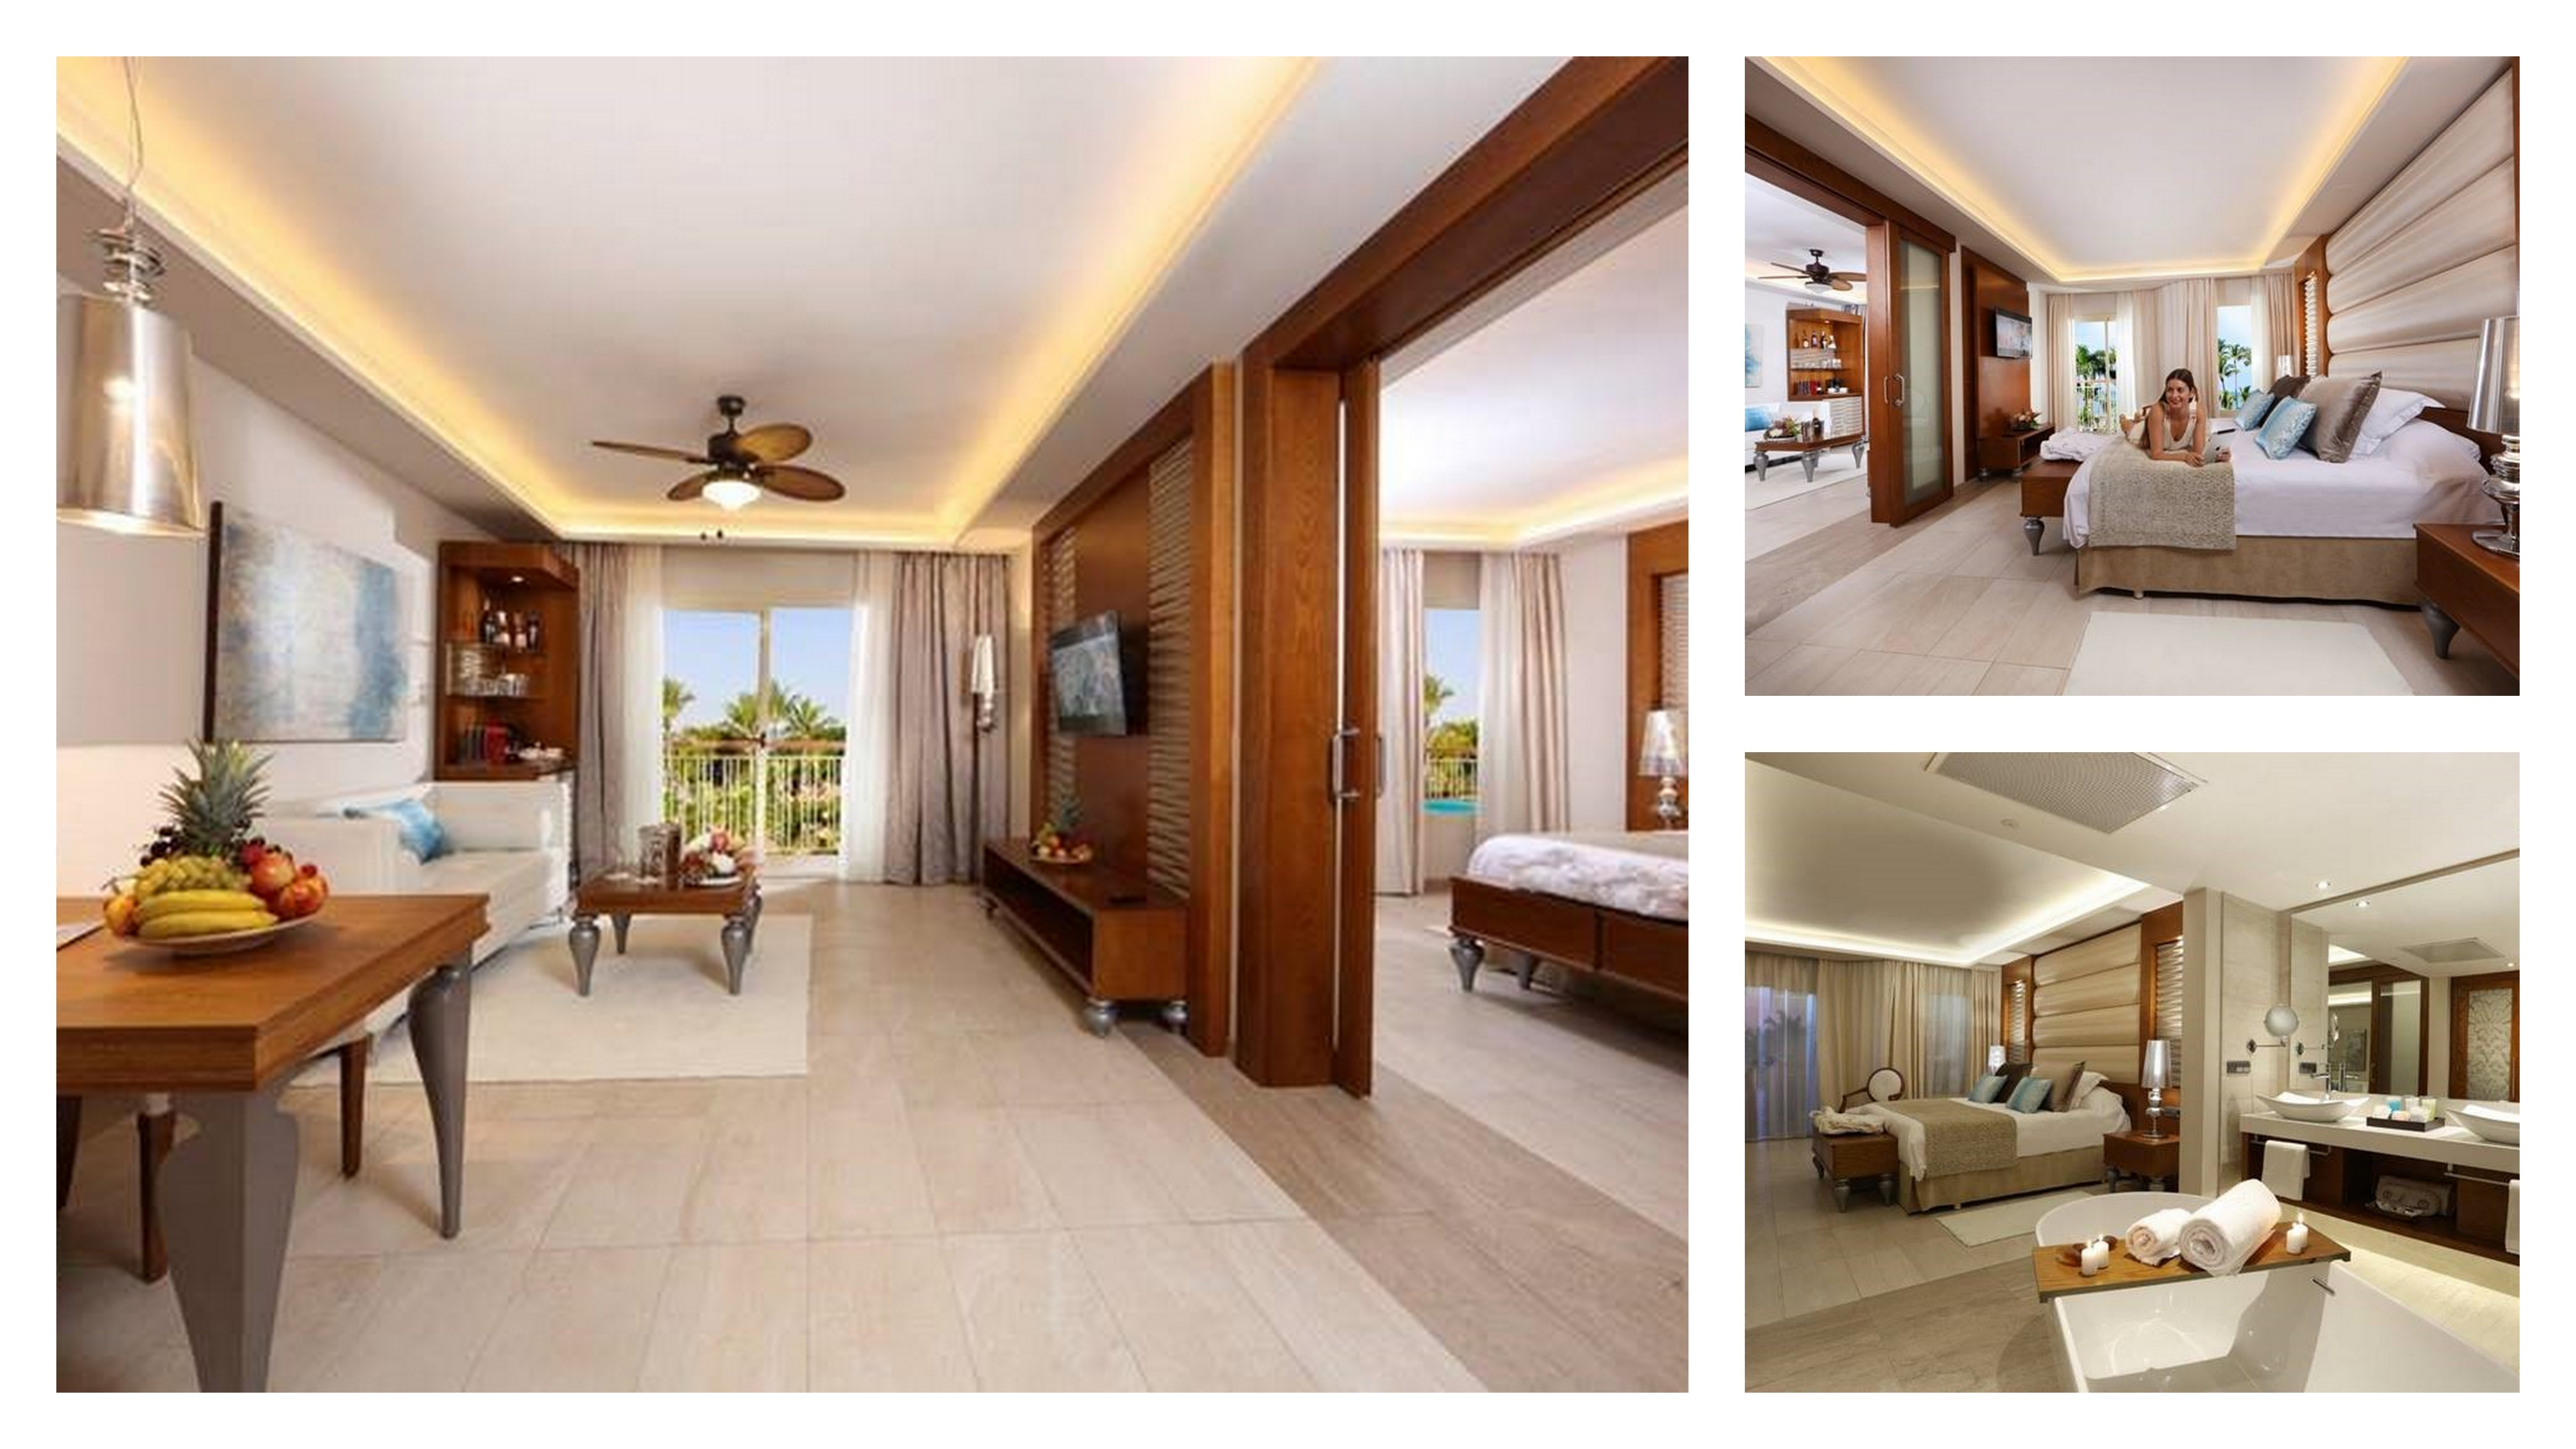 Mirage One Bedroom Suite More Space More Luxury More Majestic Ity Coming To Punta Cana